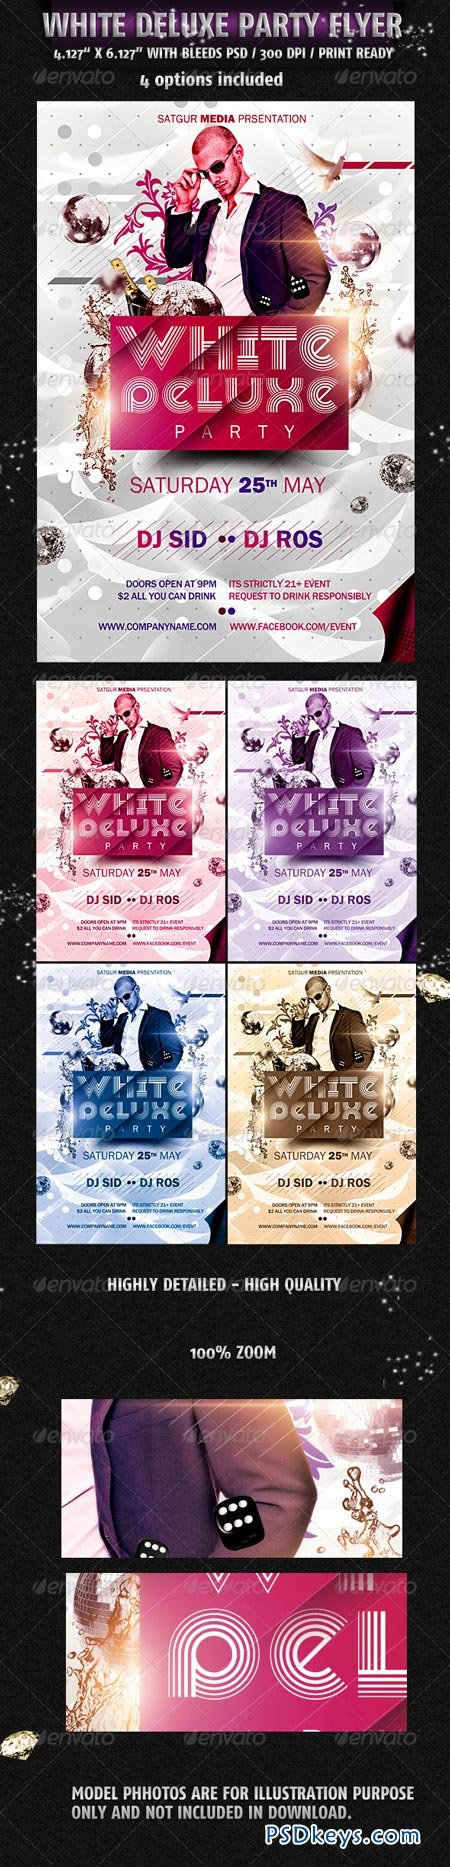 White Deluxe Party Flyer 2305057